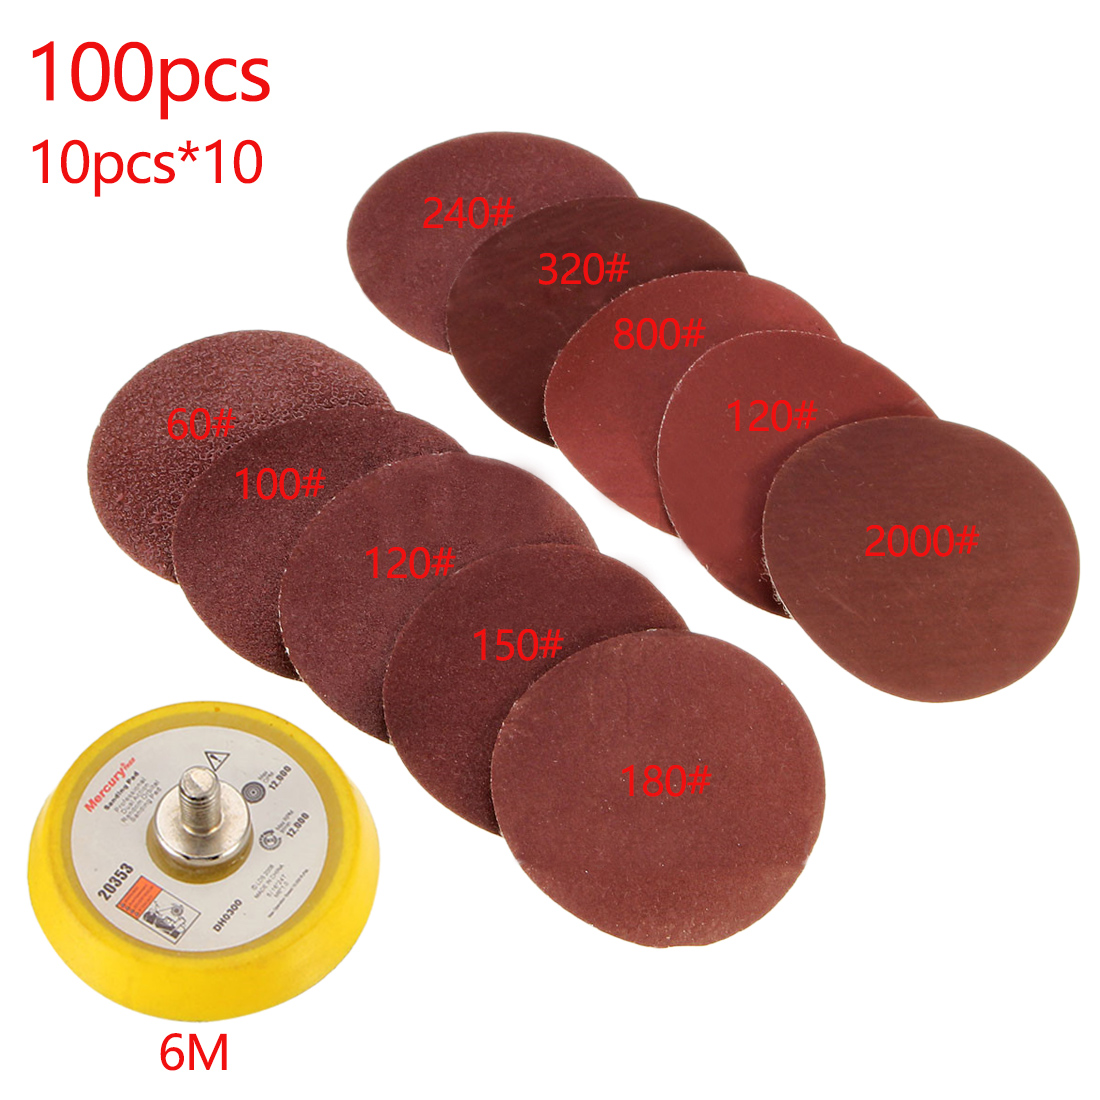 100pcs/set Durable Sander Disc 50mm 60-2000 Grit Paper + 1pc Hook Loop Plate Fit Dremel 4000 Electric Grinder Abrasive Tools